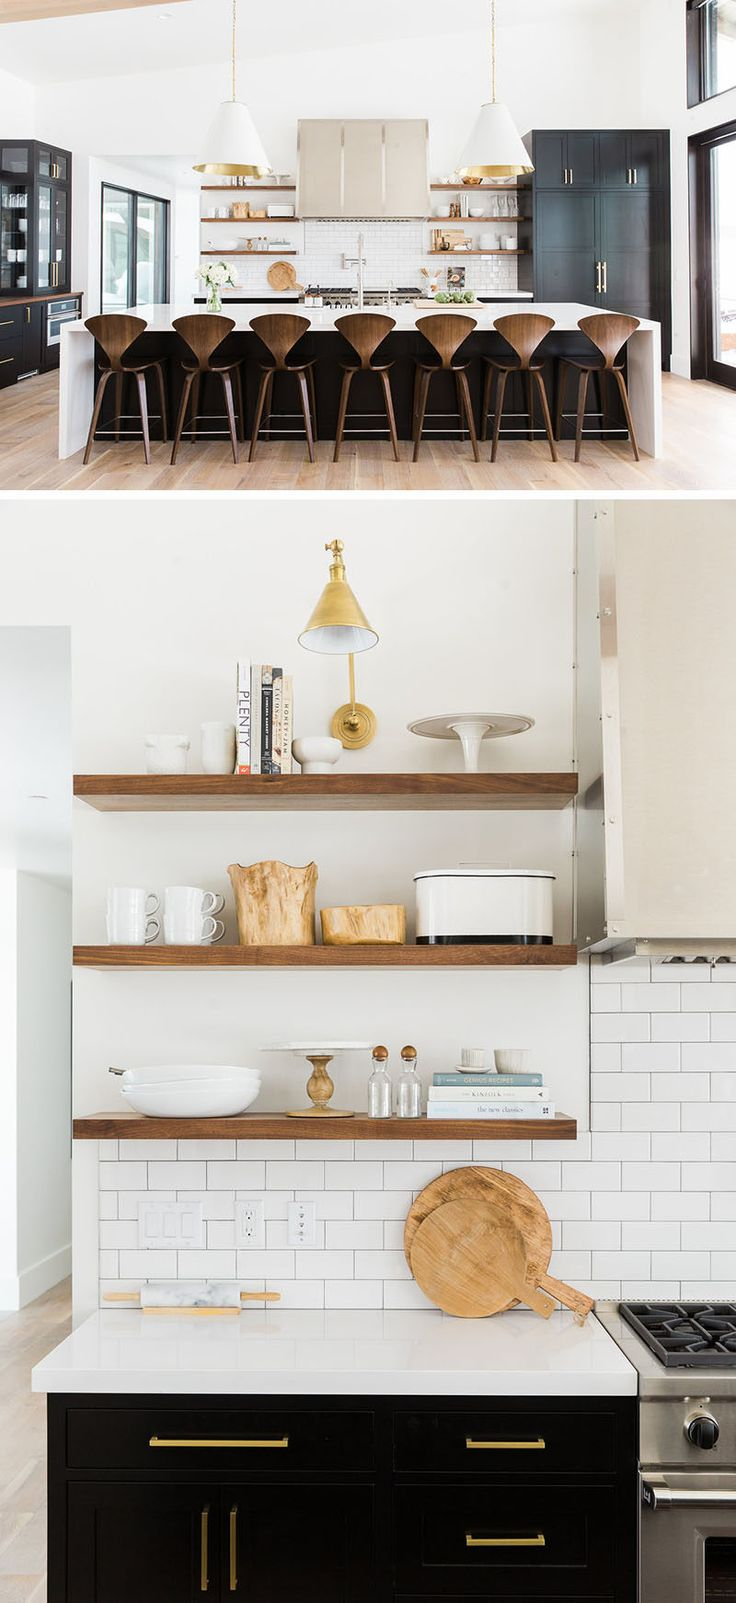 Kitchen Design Idea - Open Shelving (19 Photos) // The open shelving in this kitchen puts things like beautiful cake stands, cutting boards, cookbooks, as well as daily essentials, like butter and coffee mugs, on display for all to see.